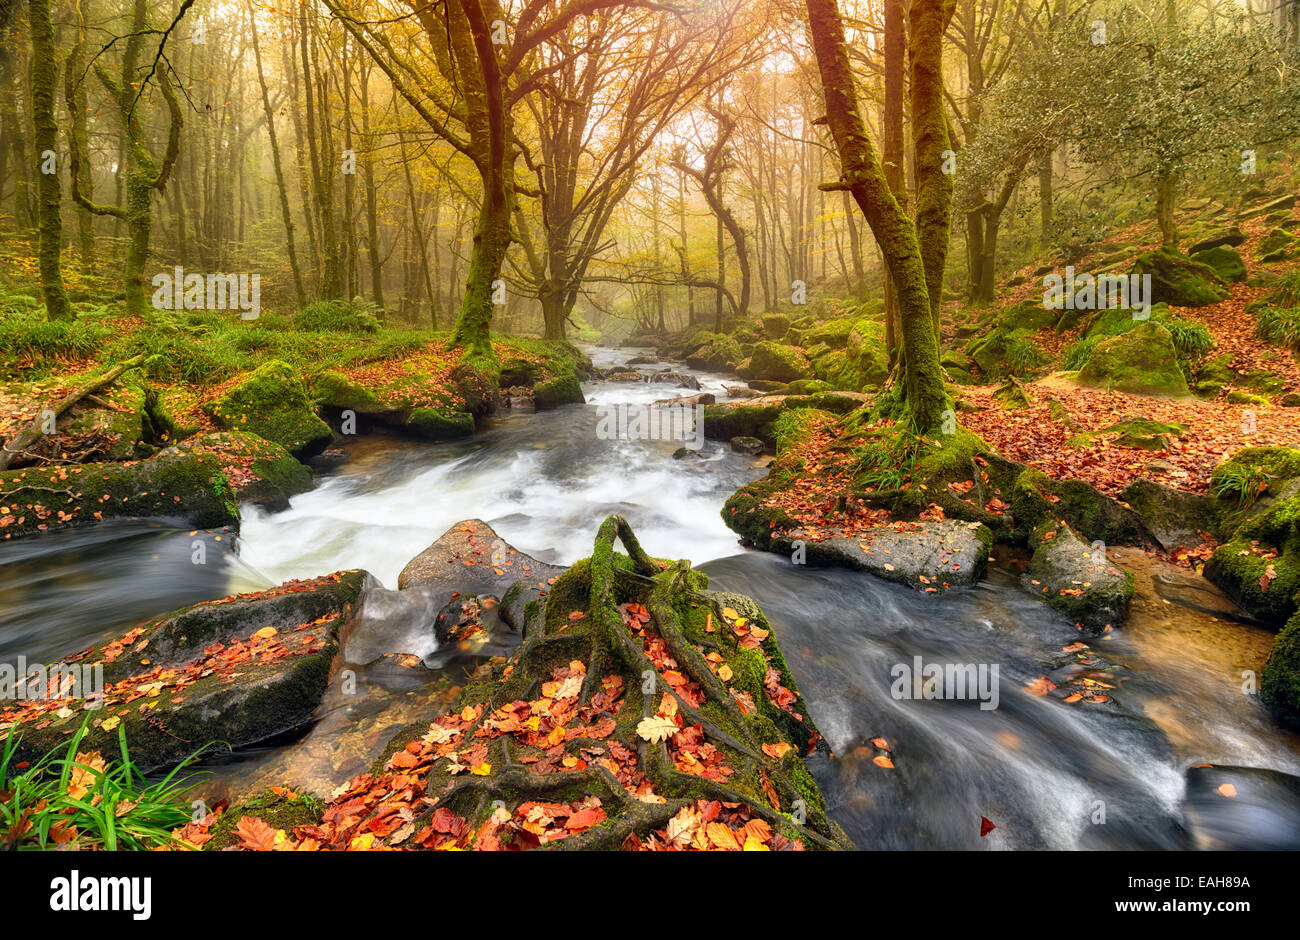 Fast flowing river through Autumn forest at Golitha Falls in Cornwall - Stock Image